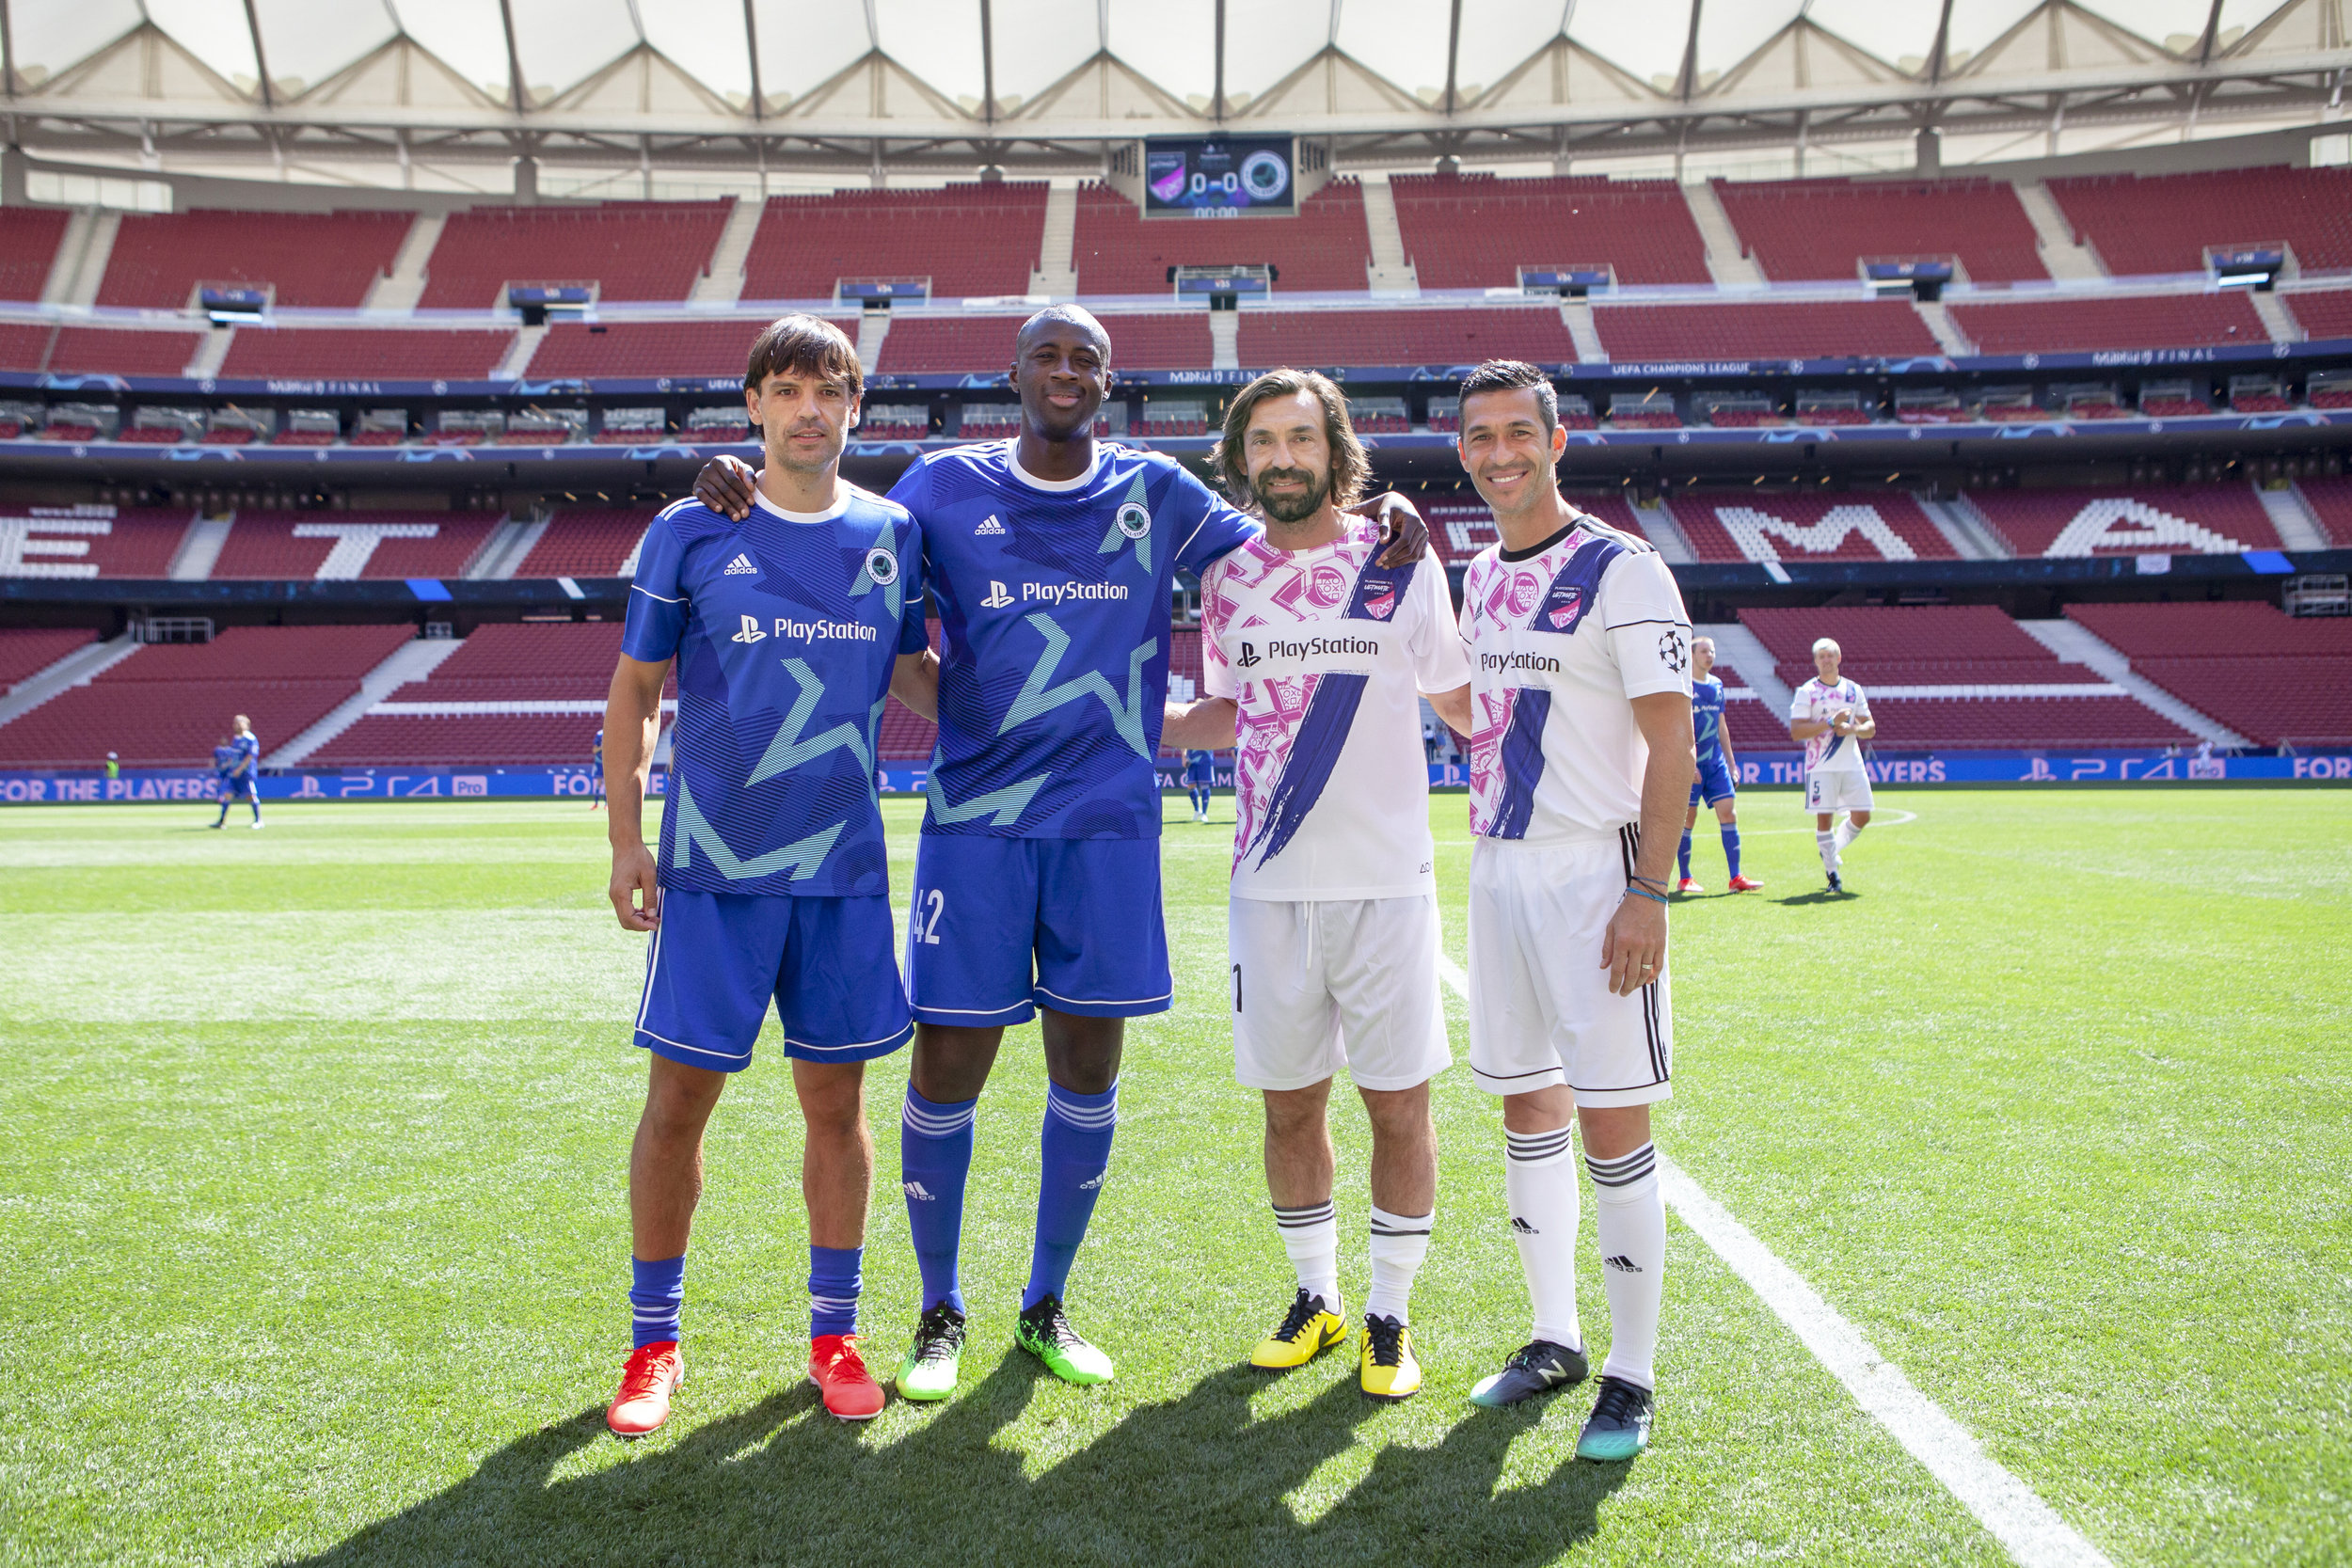 Captain of the All-Stars, Yaya Toure, alongside captain of the Ultimate 11, Andrea Pirlo.